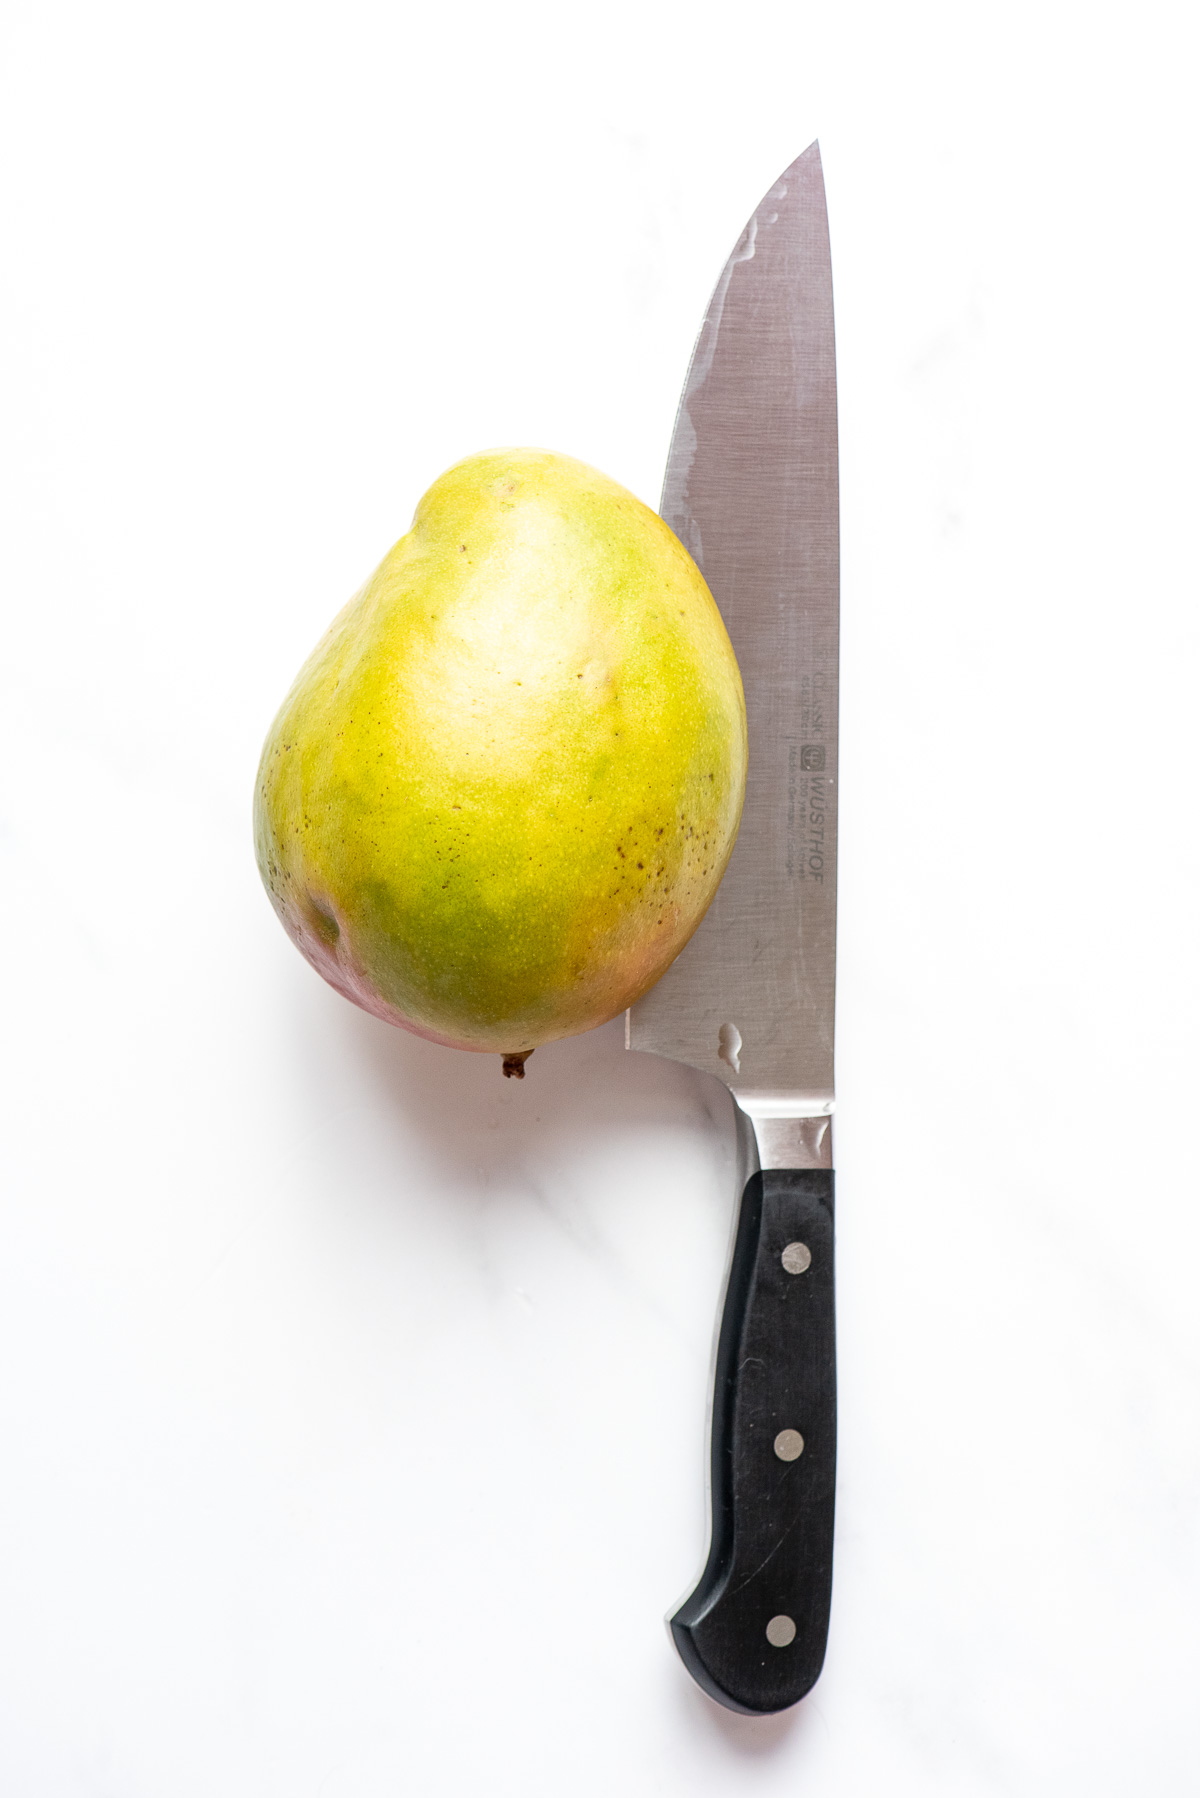 cutting through a mango with a large knife